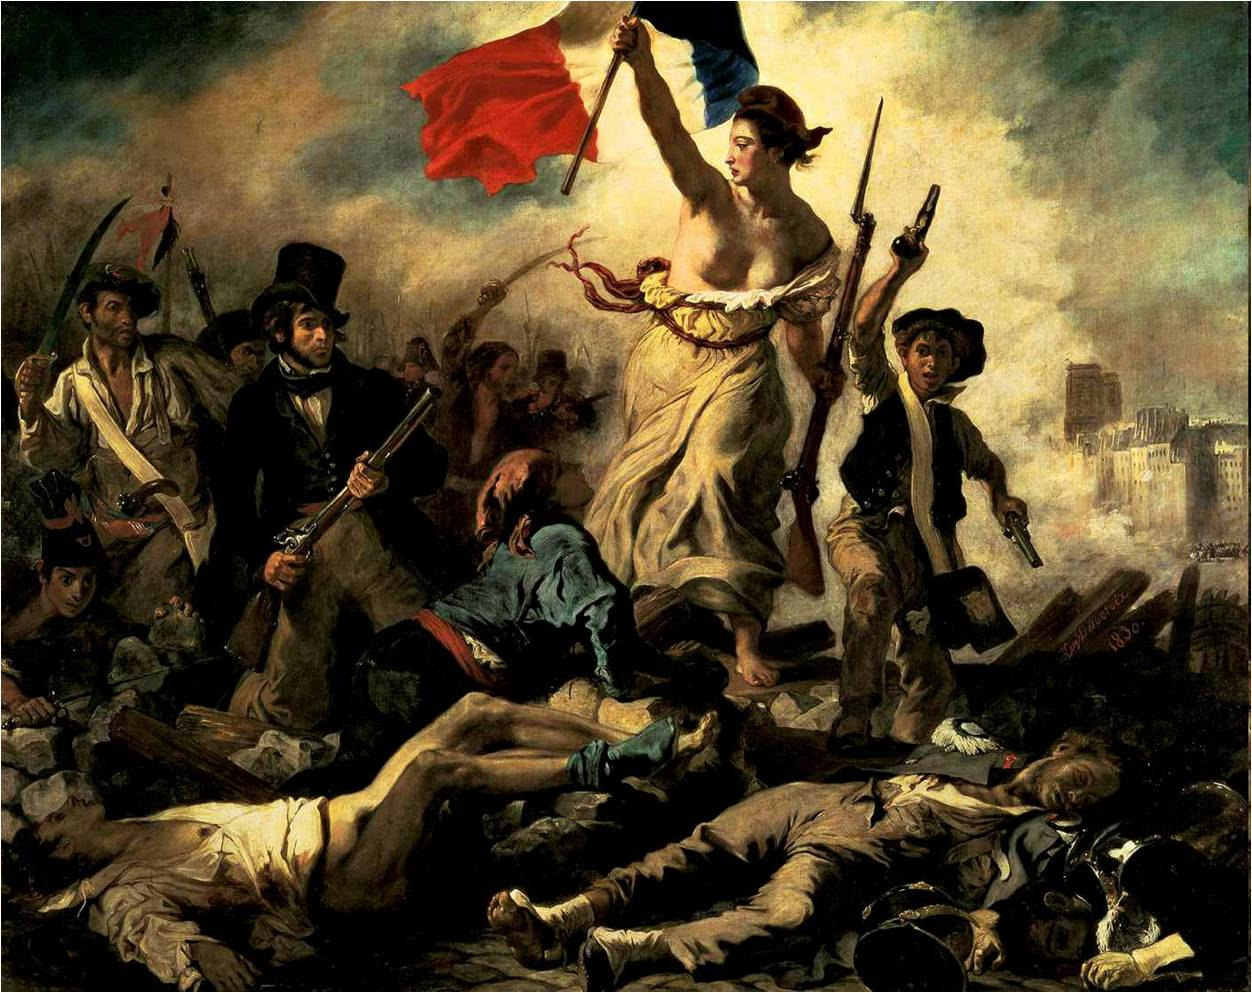 delacroix_liberty-leading-the-people-1830.jpg